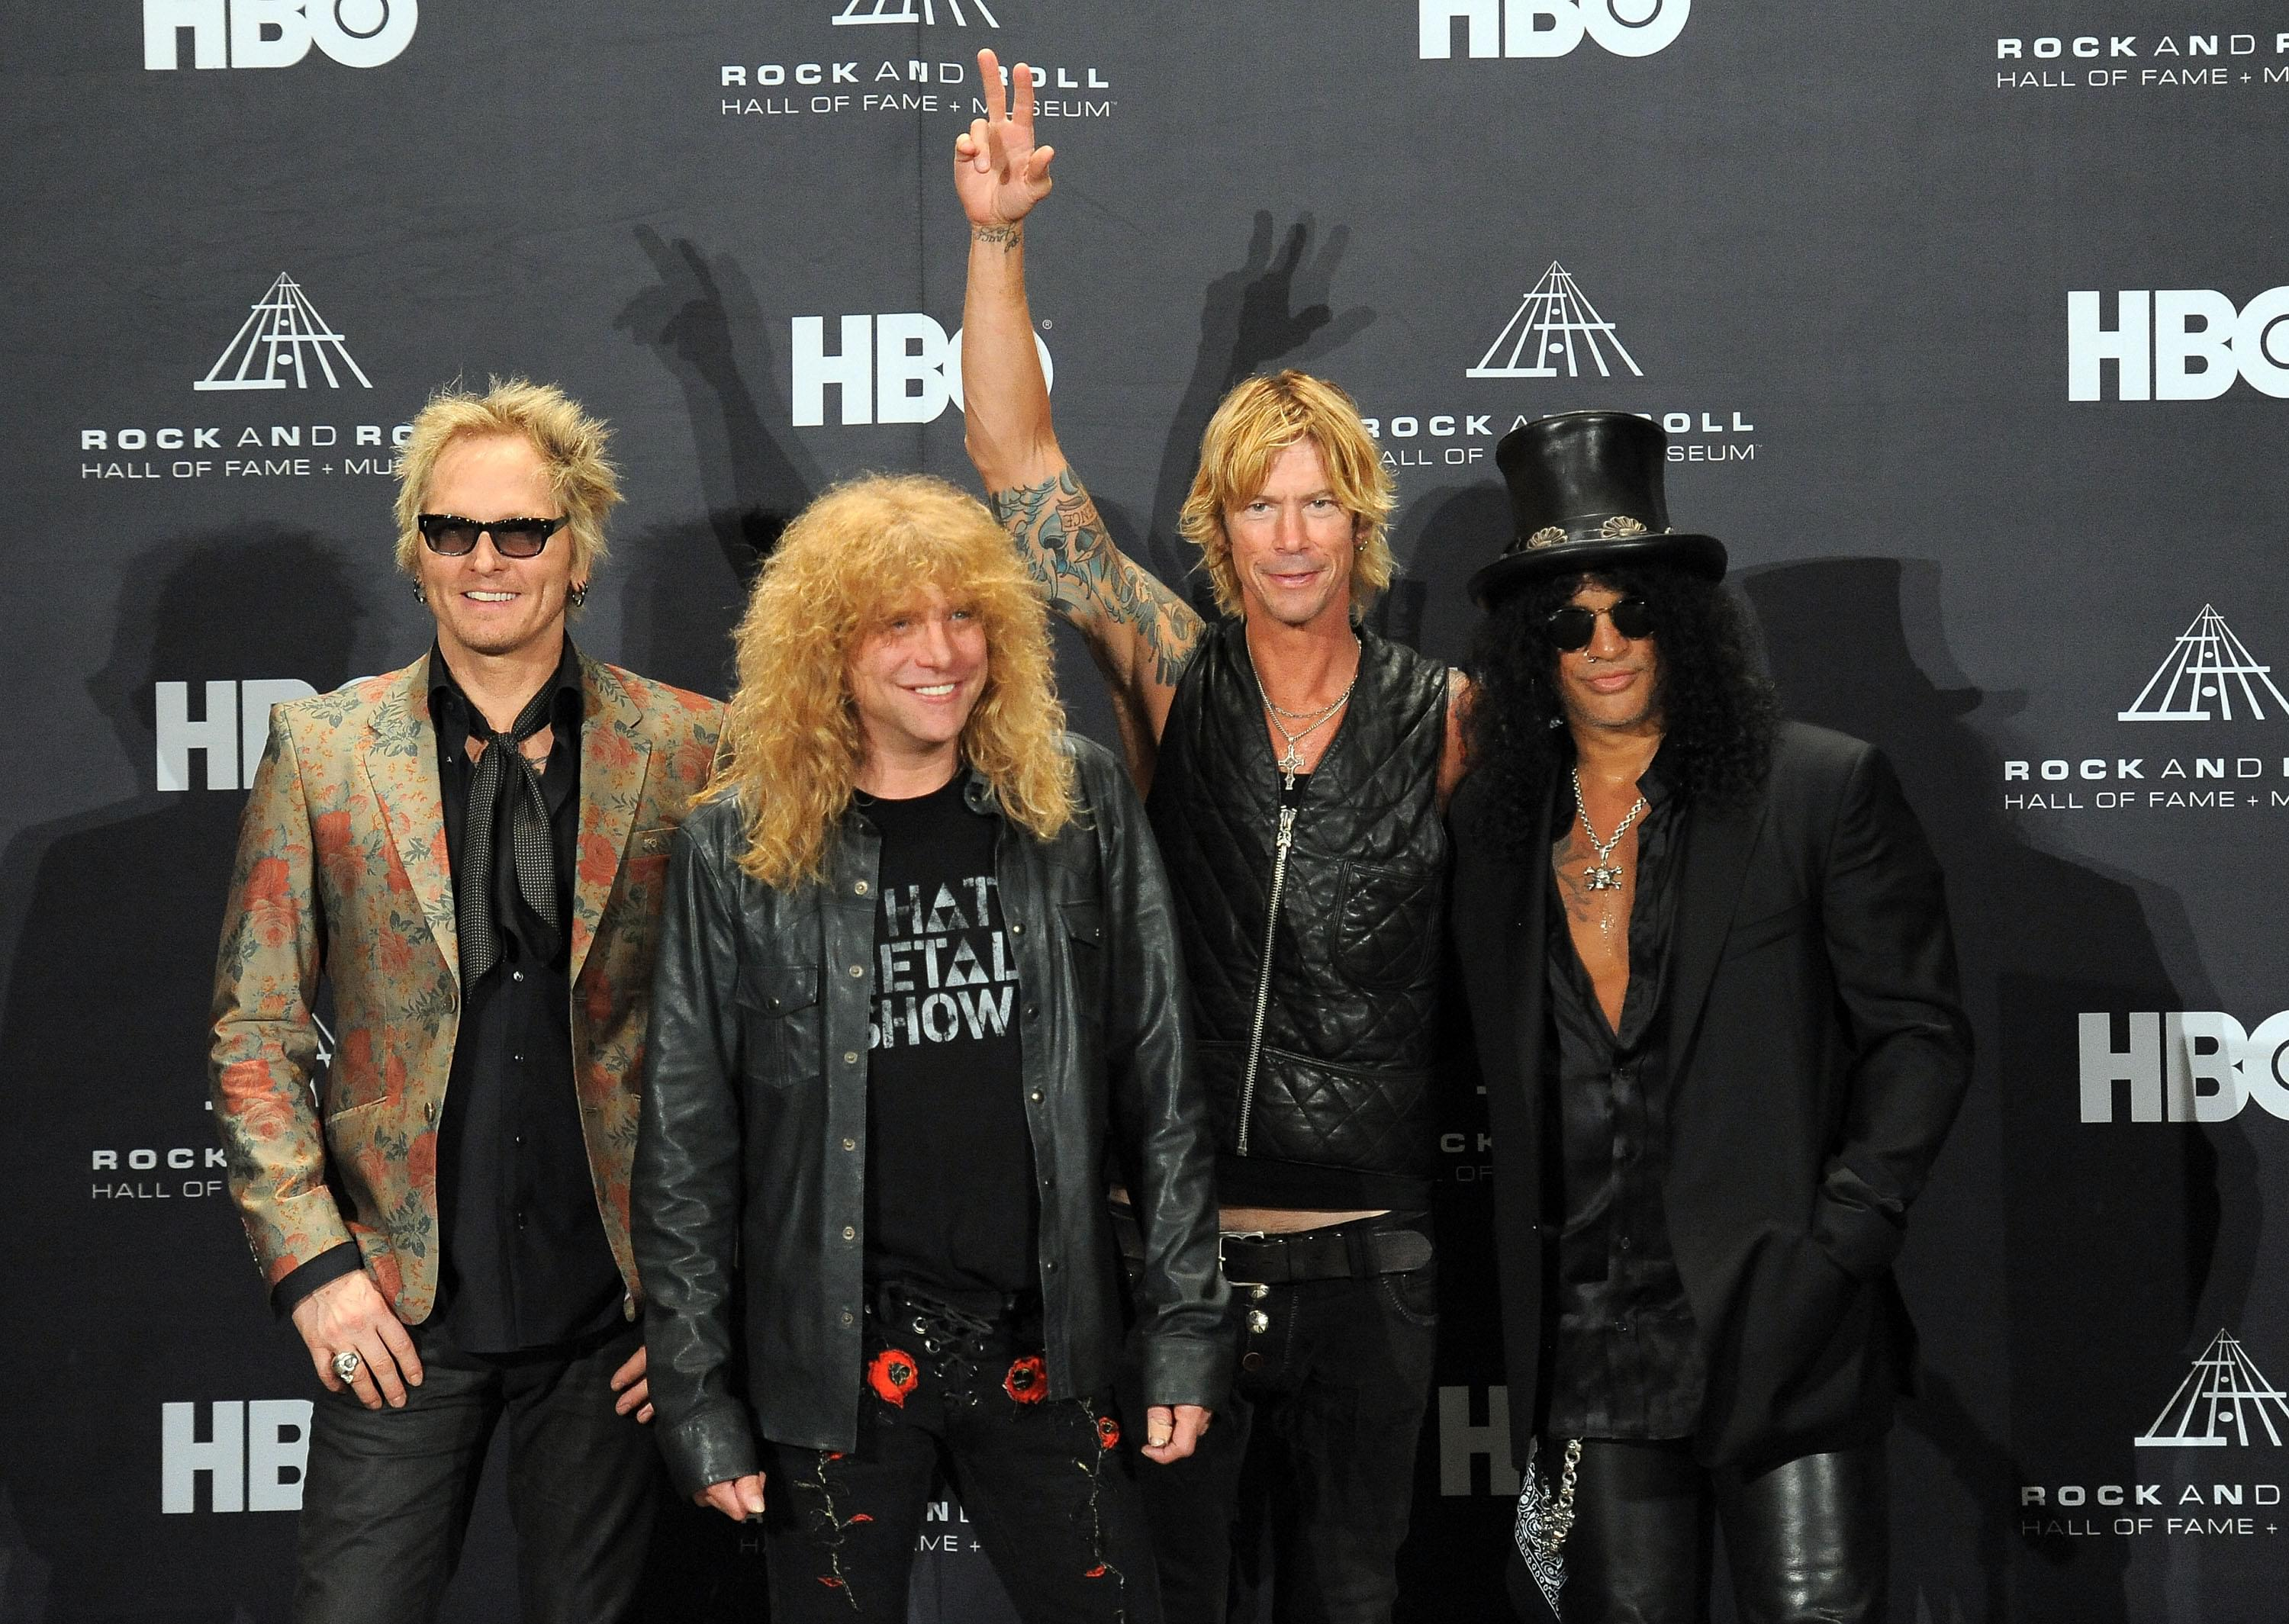 Guns N' Roses to perform at second annual Pre-Super Bowl Festival